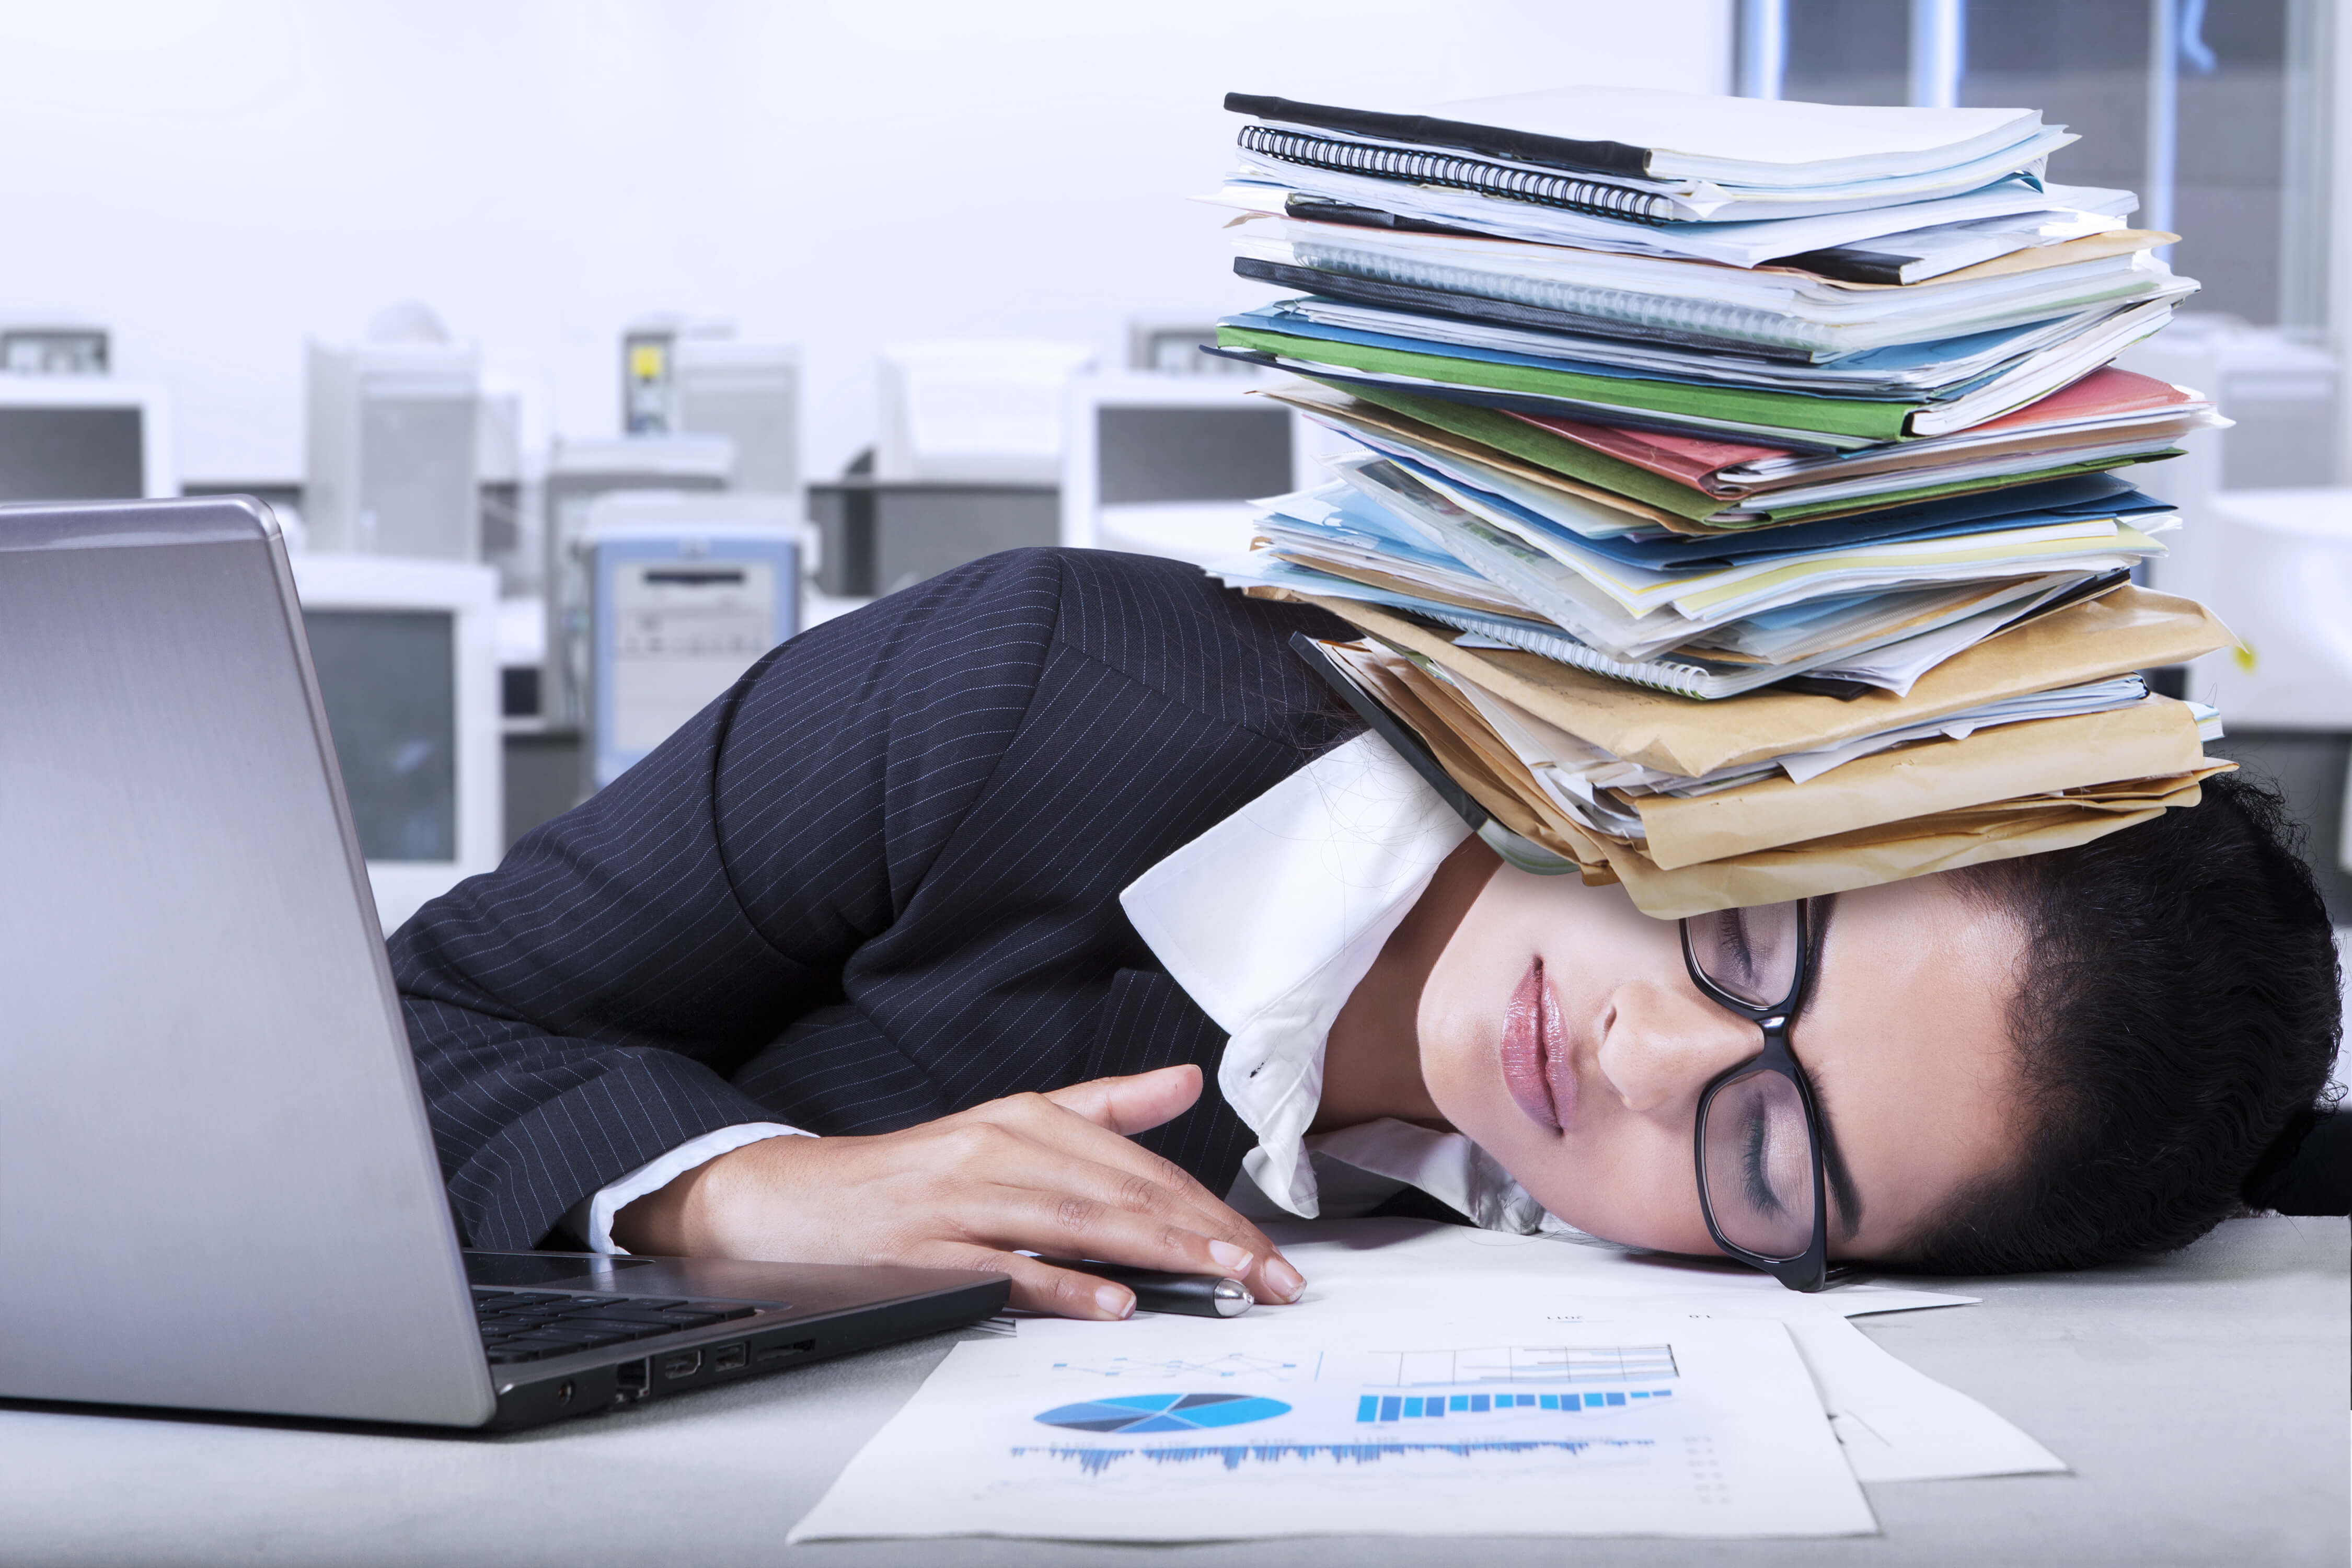 woman sleeps at her desk with piles of paperwork on her head